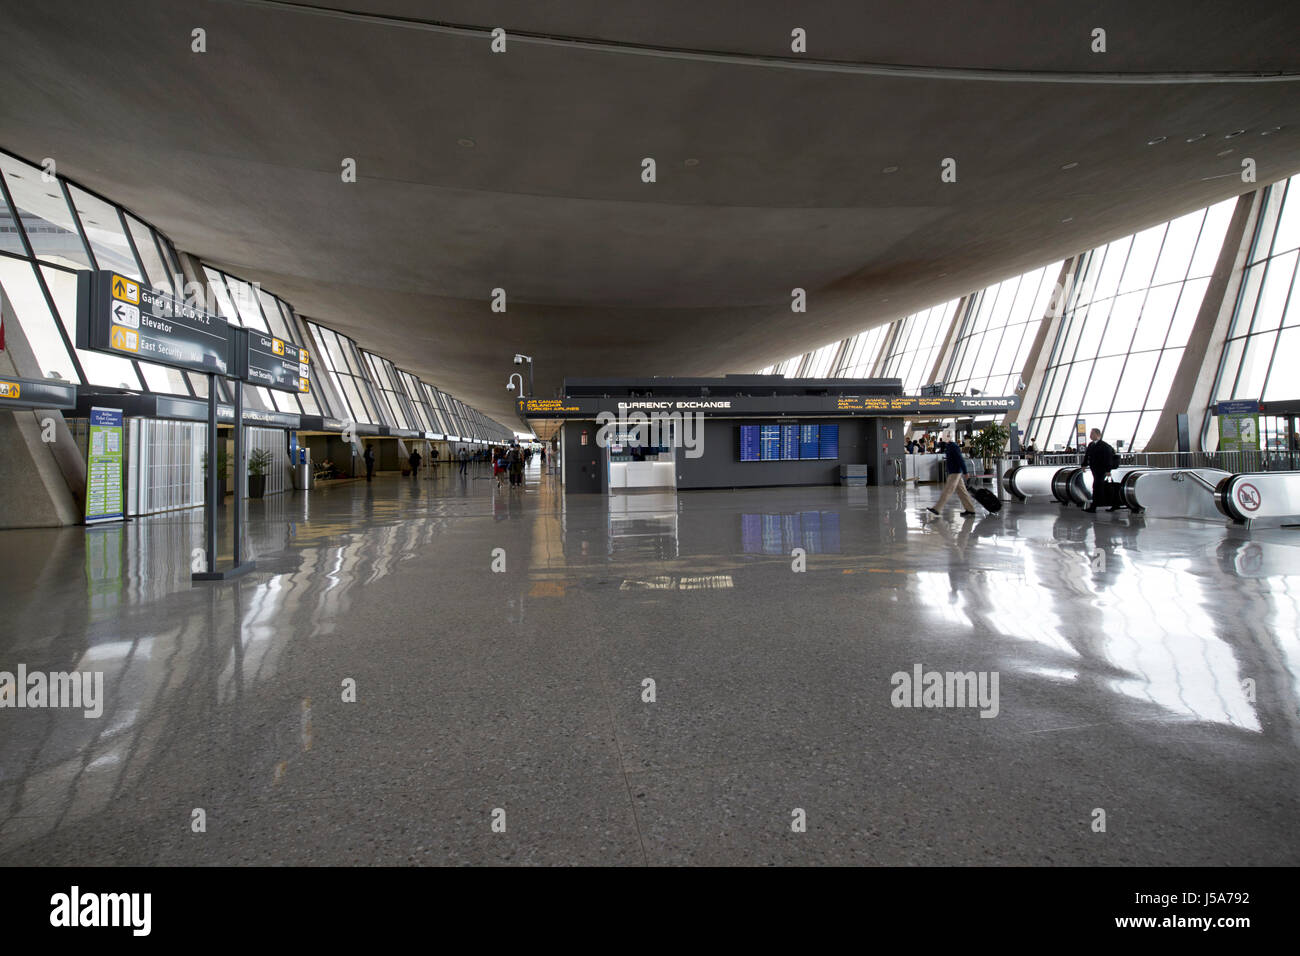 main terminal building catenary ceiling interior Dulles international airport serving Washington DC USA - Stock Image